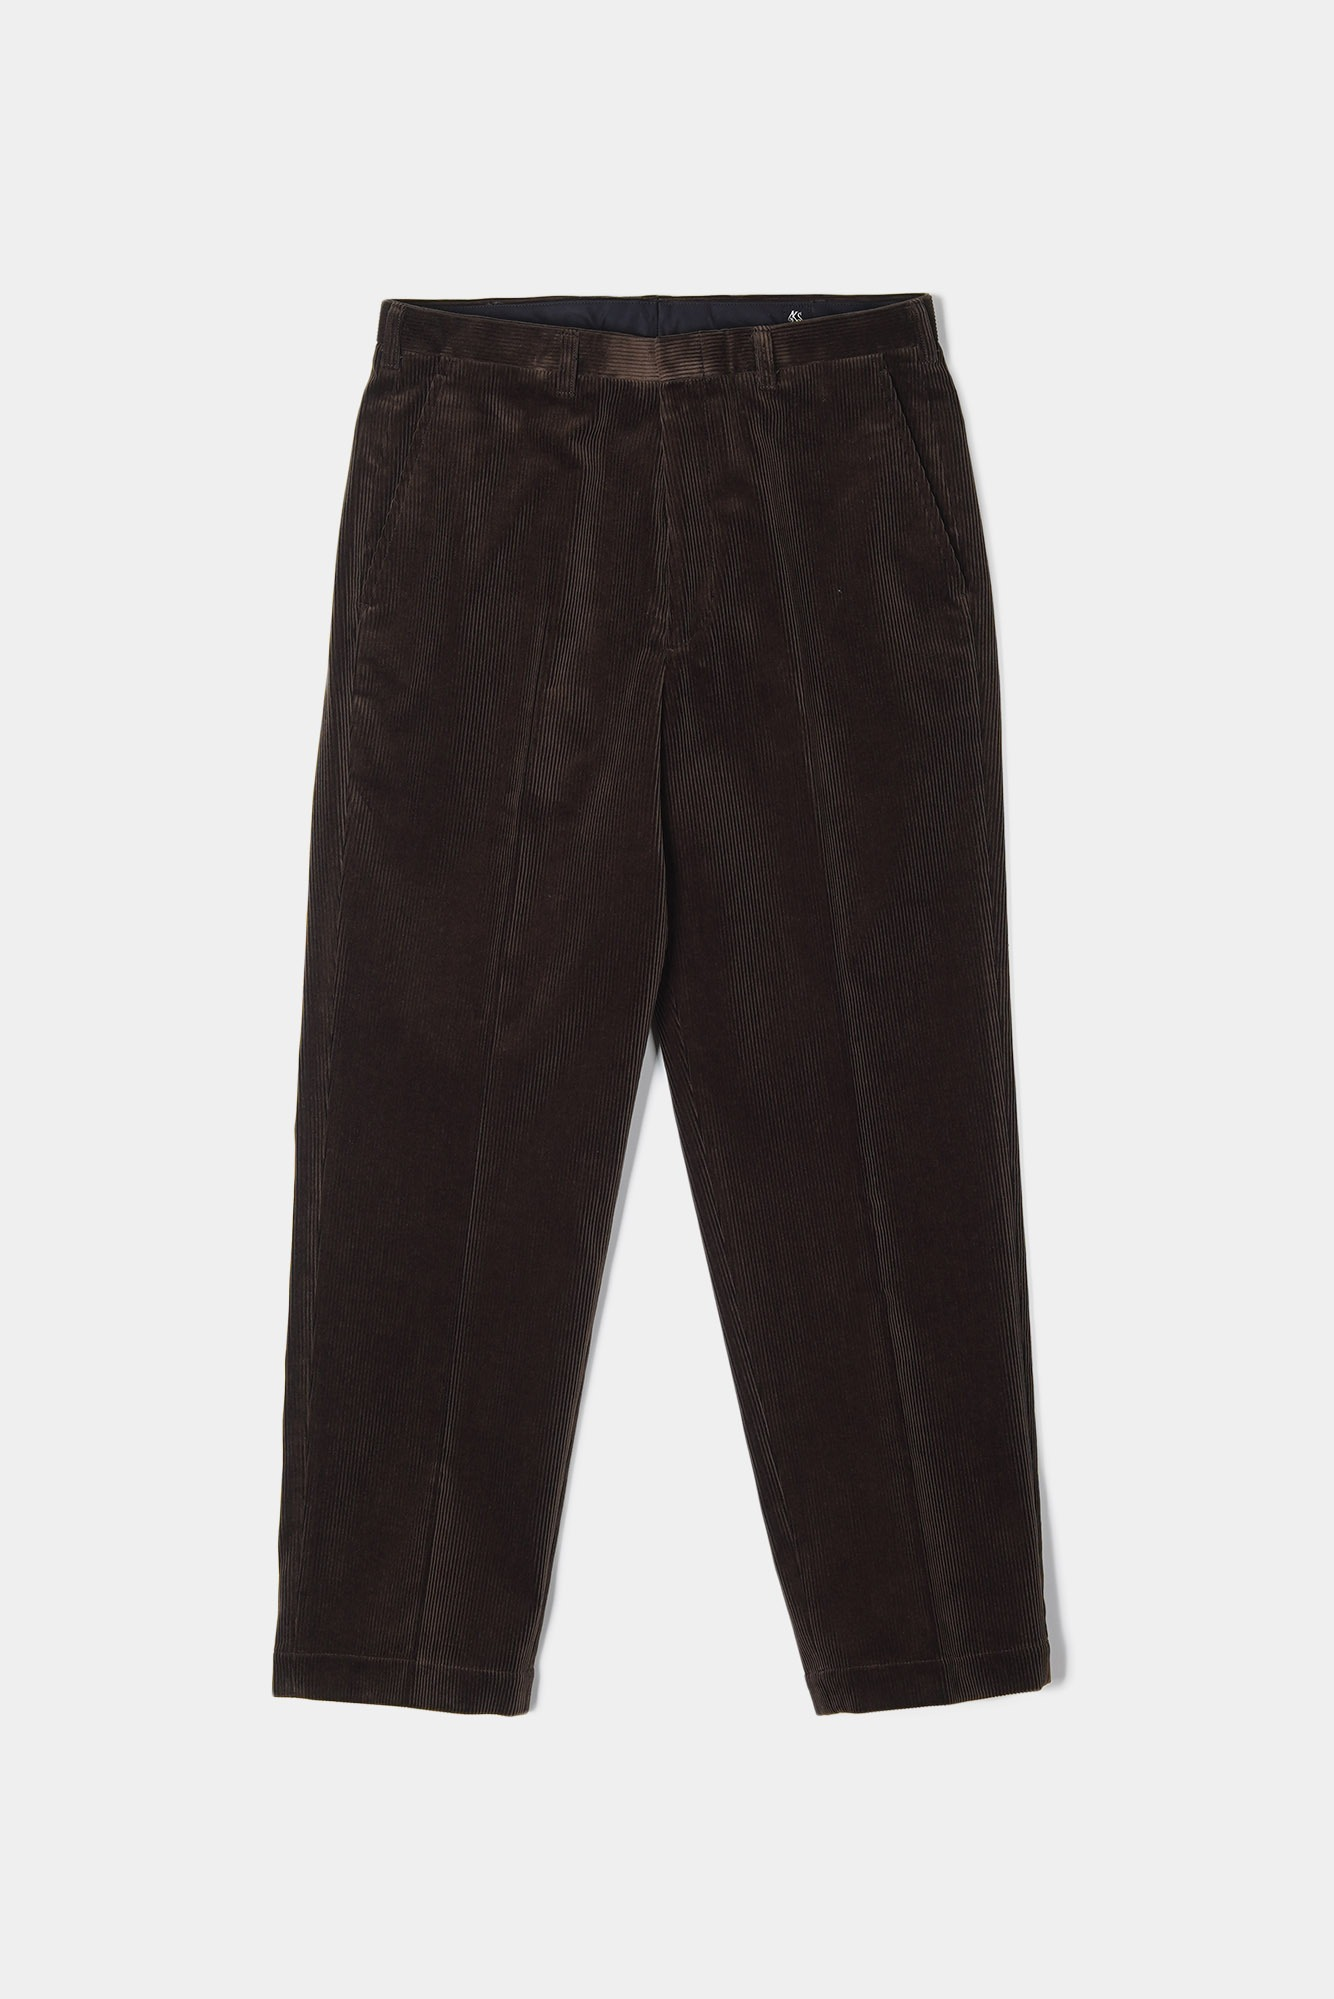 "KAPTAIN SUNSHINE Corduroy Trousers ""Brown"""